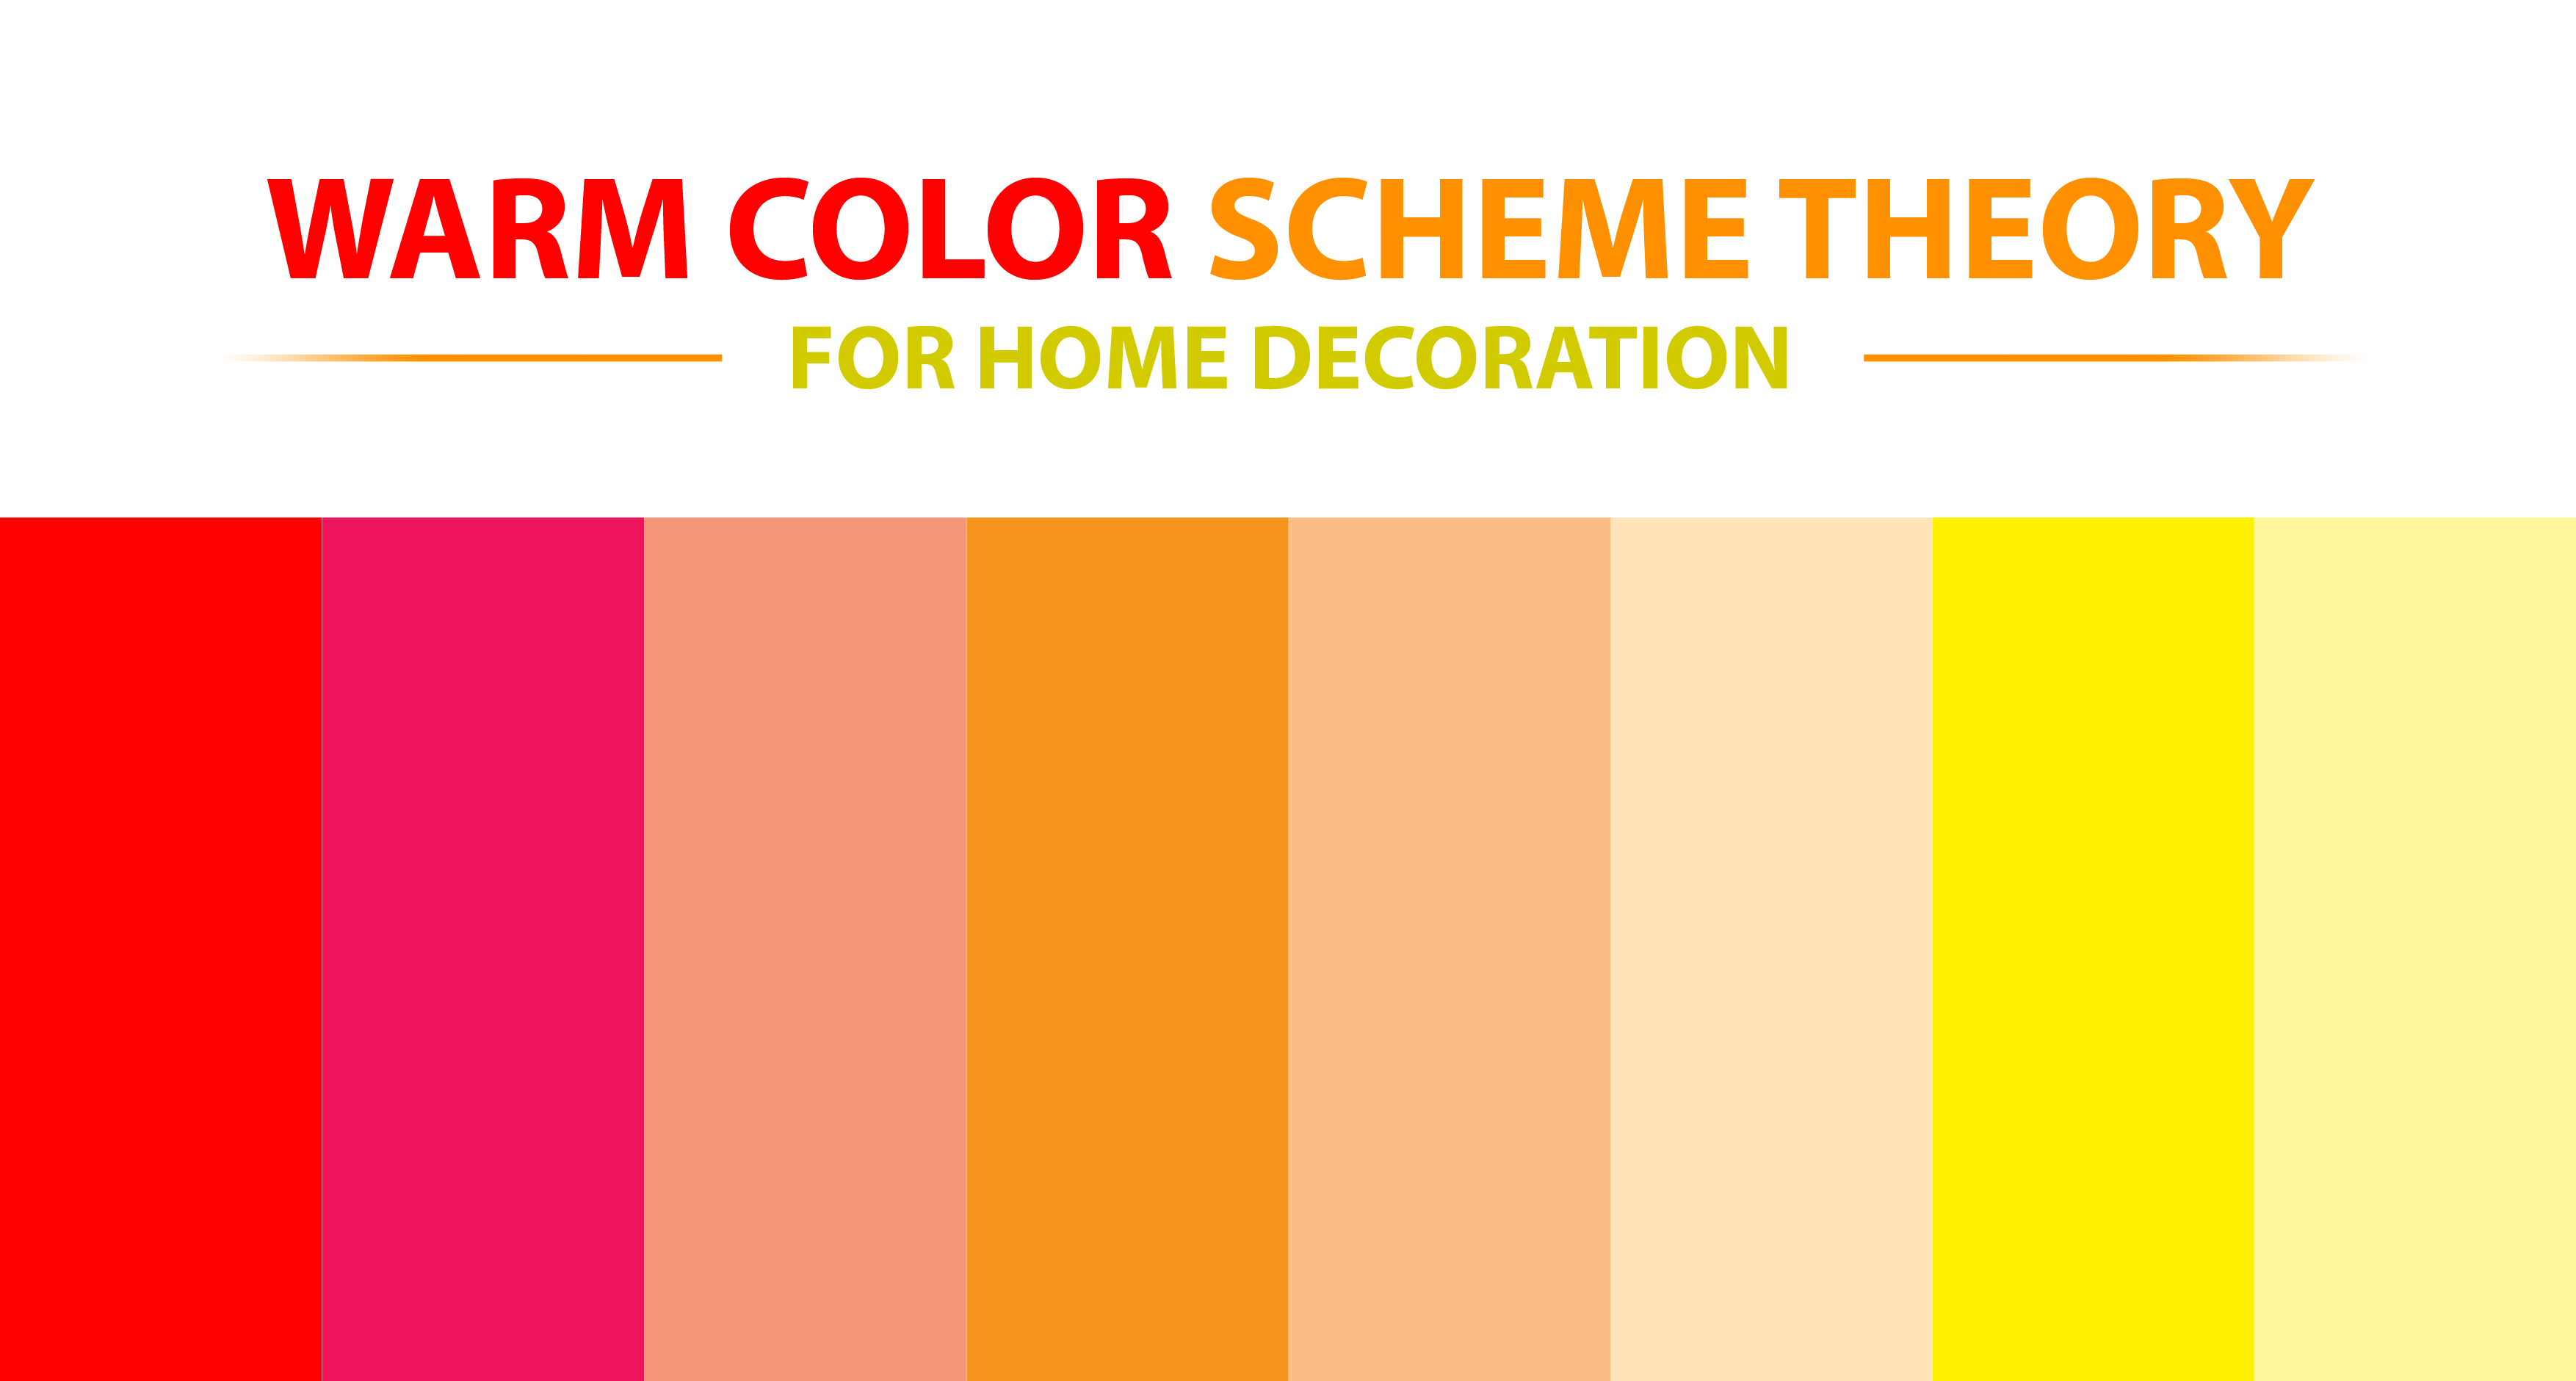 Warm Color Palette Magnificent Warm Color Scheme Theory For Home Decoration  Roy Home Design Review